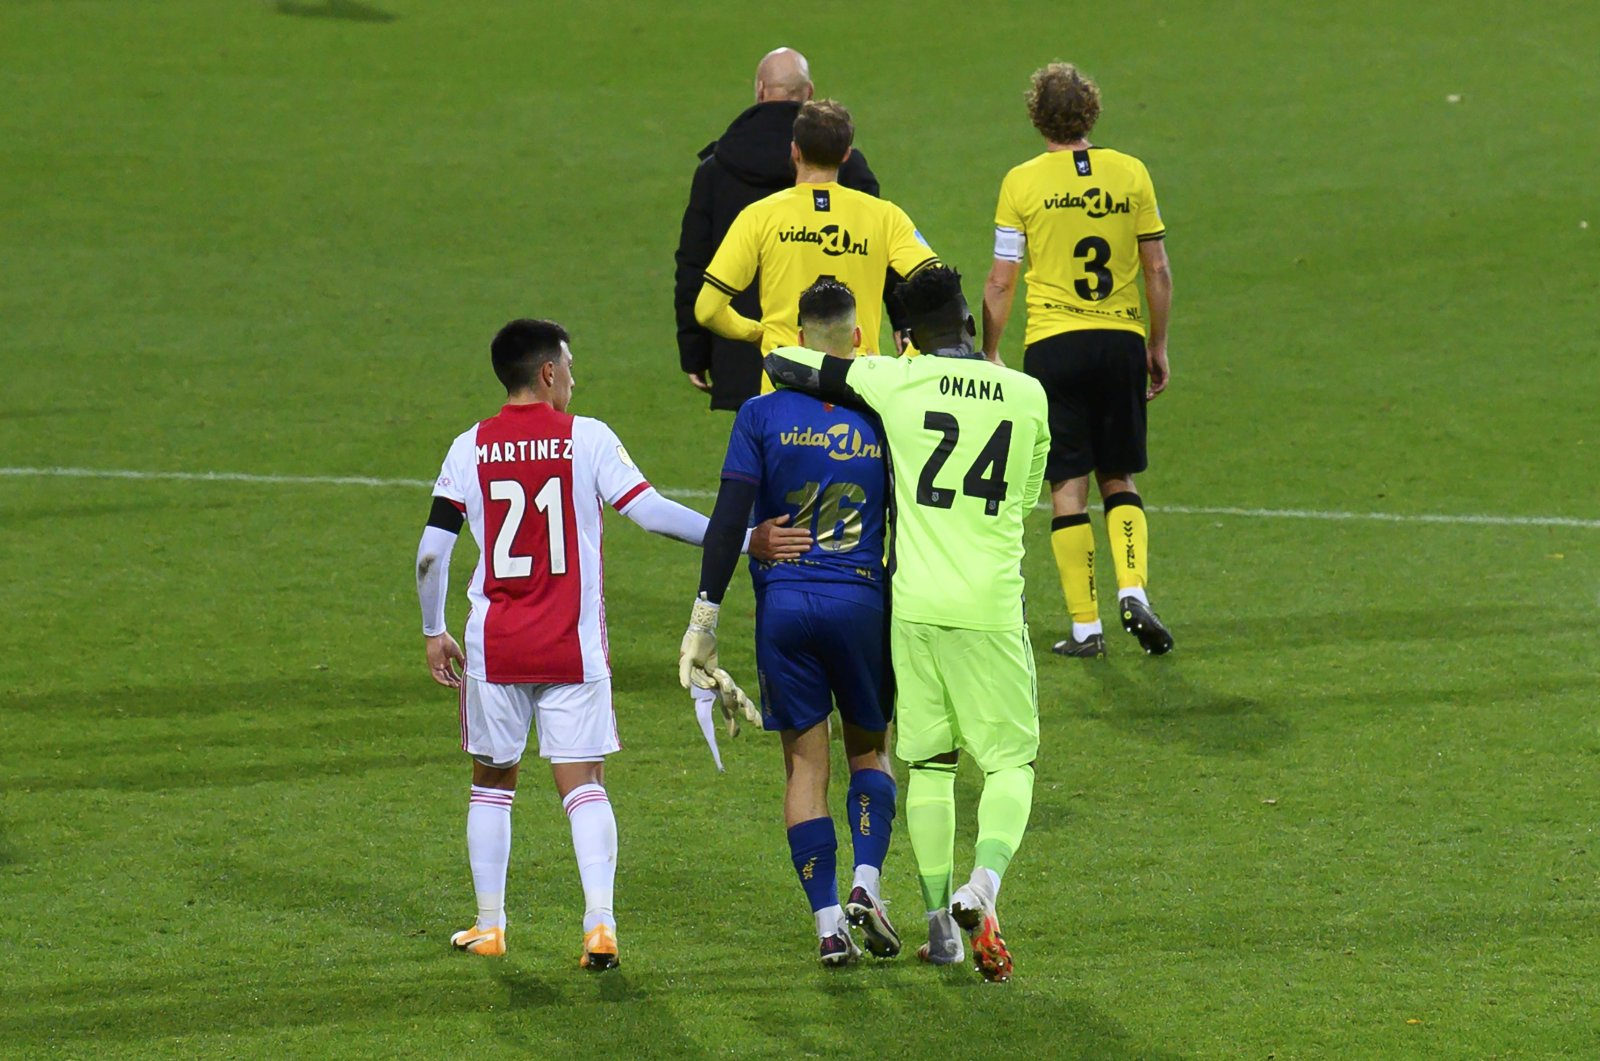 Ajax goalkeeper Andre Onana (R) consoles VVV keeper Delano van Crooij after the Dutch Eredivisie match between VVV Venlo and Ajax Amsterdam in the Covebo stadium De Koel in Venlo, the Netherlands, Oct. 24, 2020. (EPA Photo)